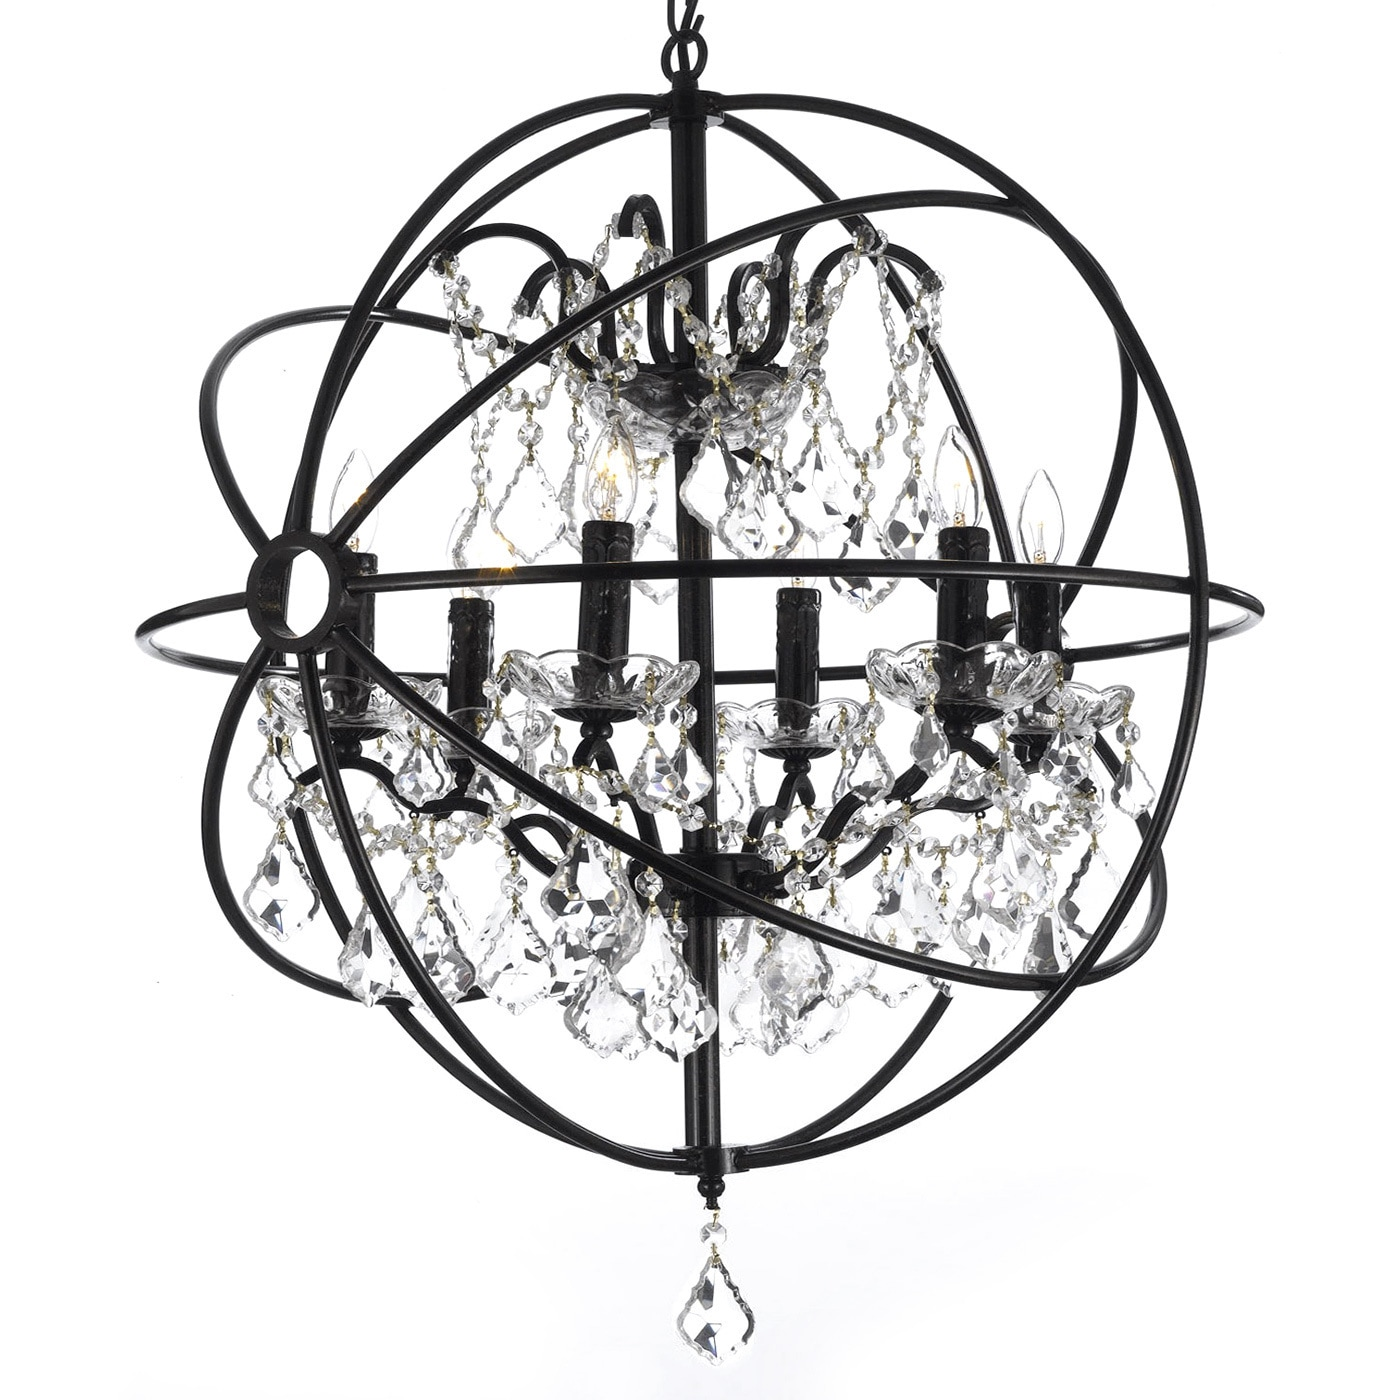 Foucault s Orb Crystal Iron 6 light Chandelier Free Shipping